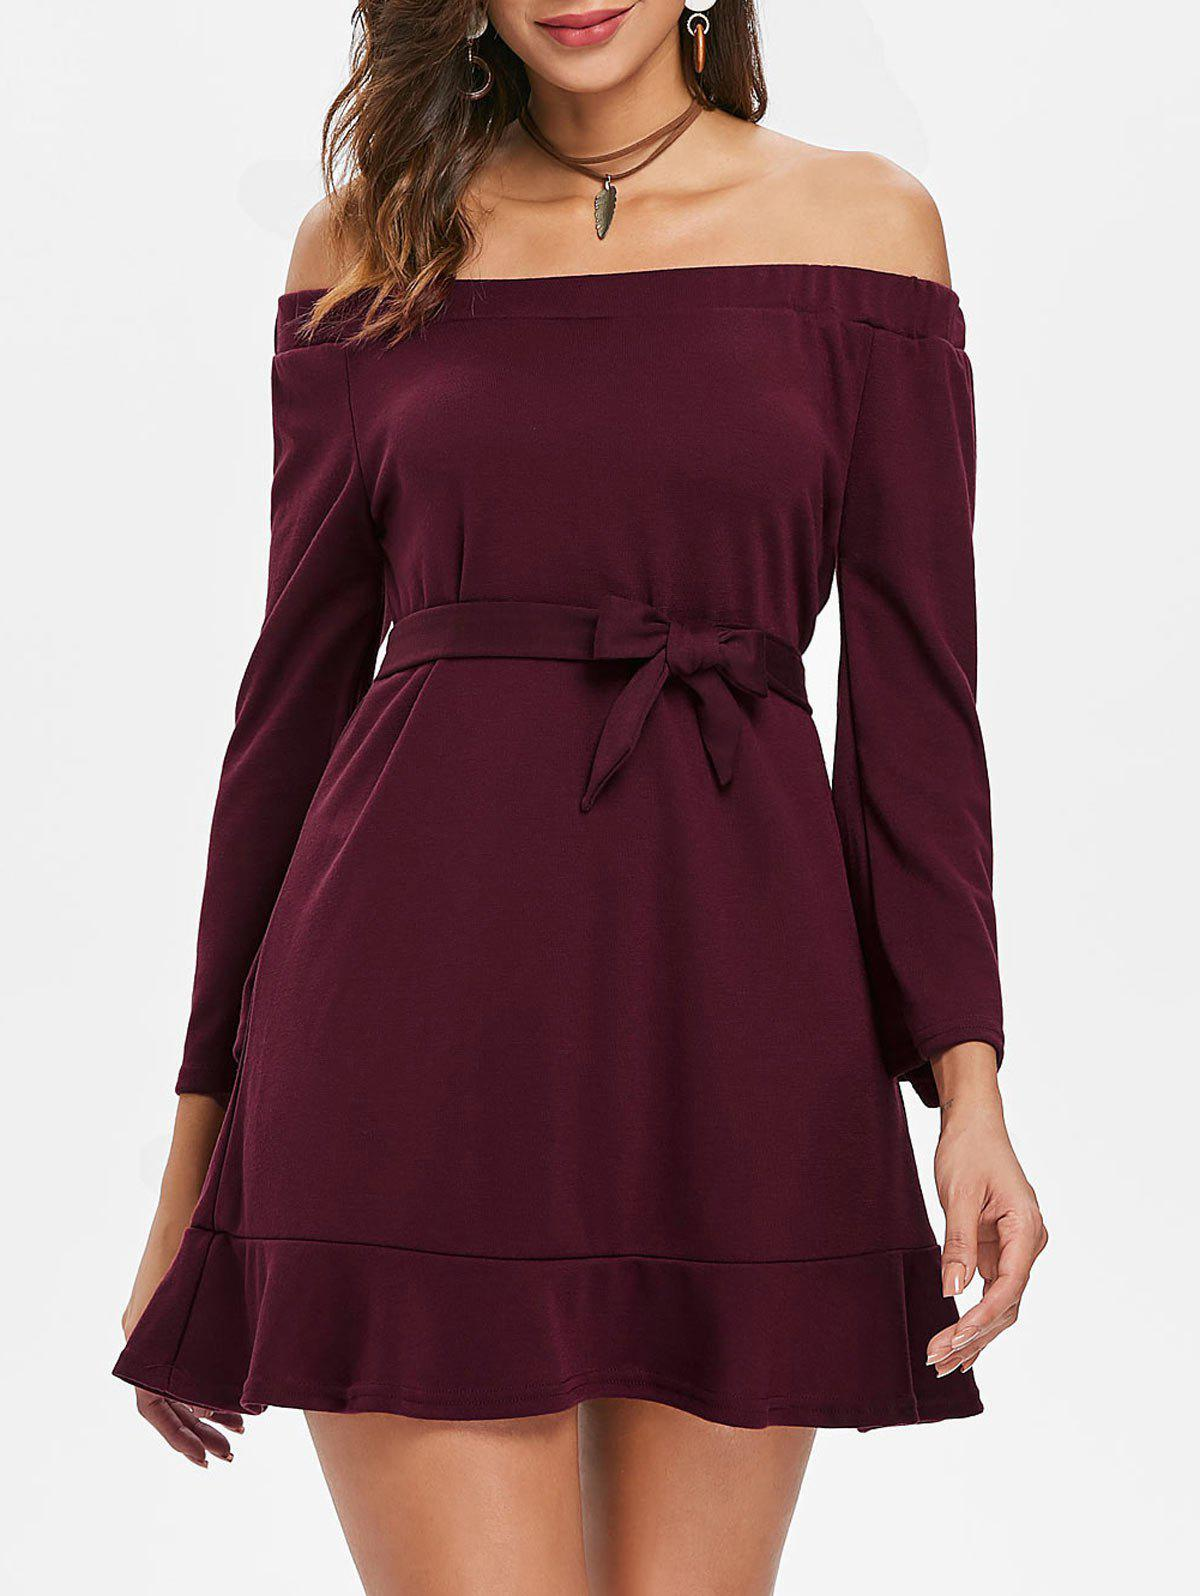 Shop Off The Shoulder Belted Top